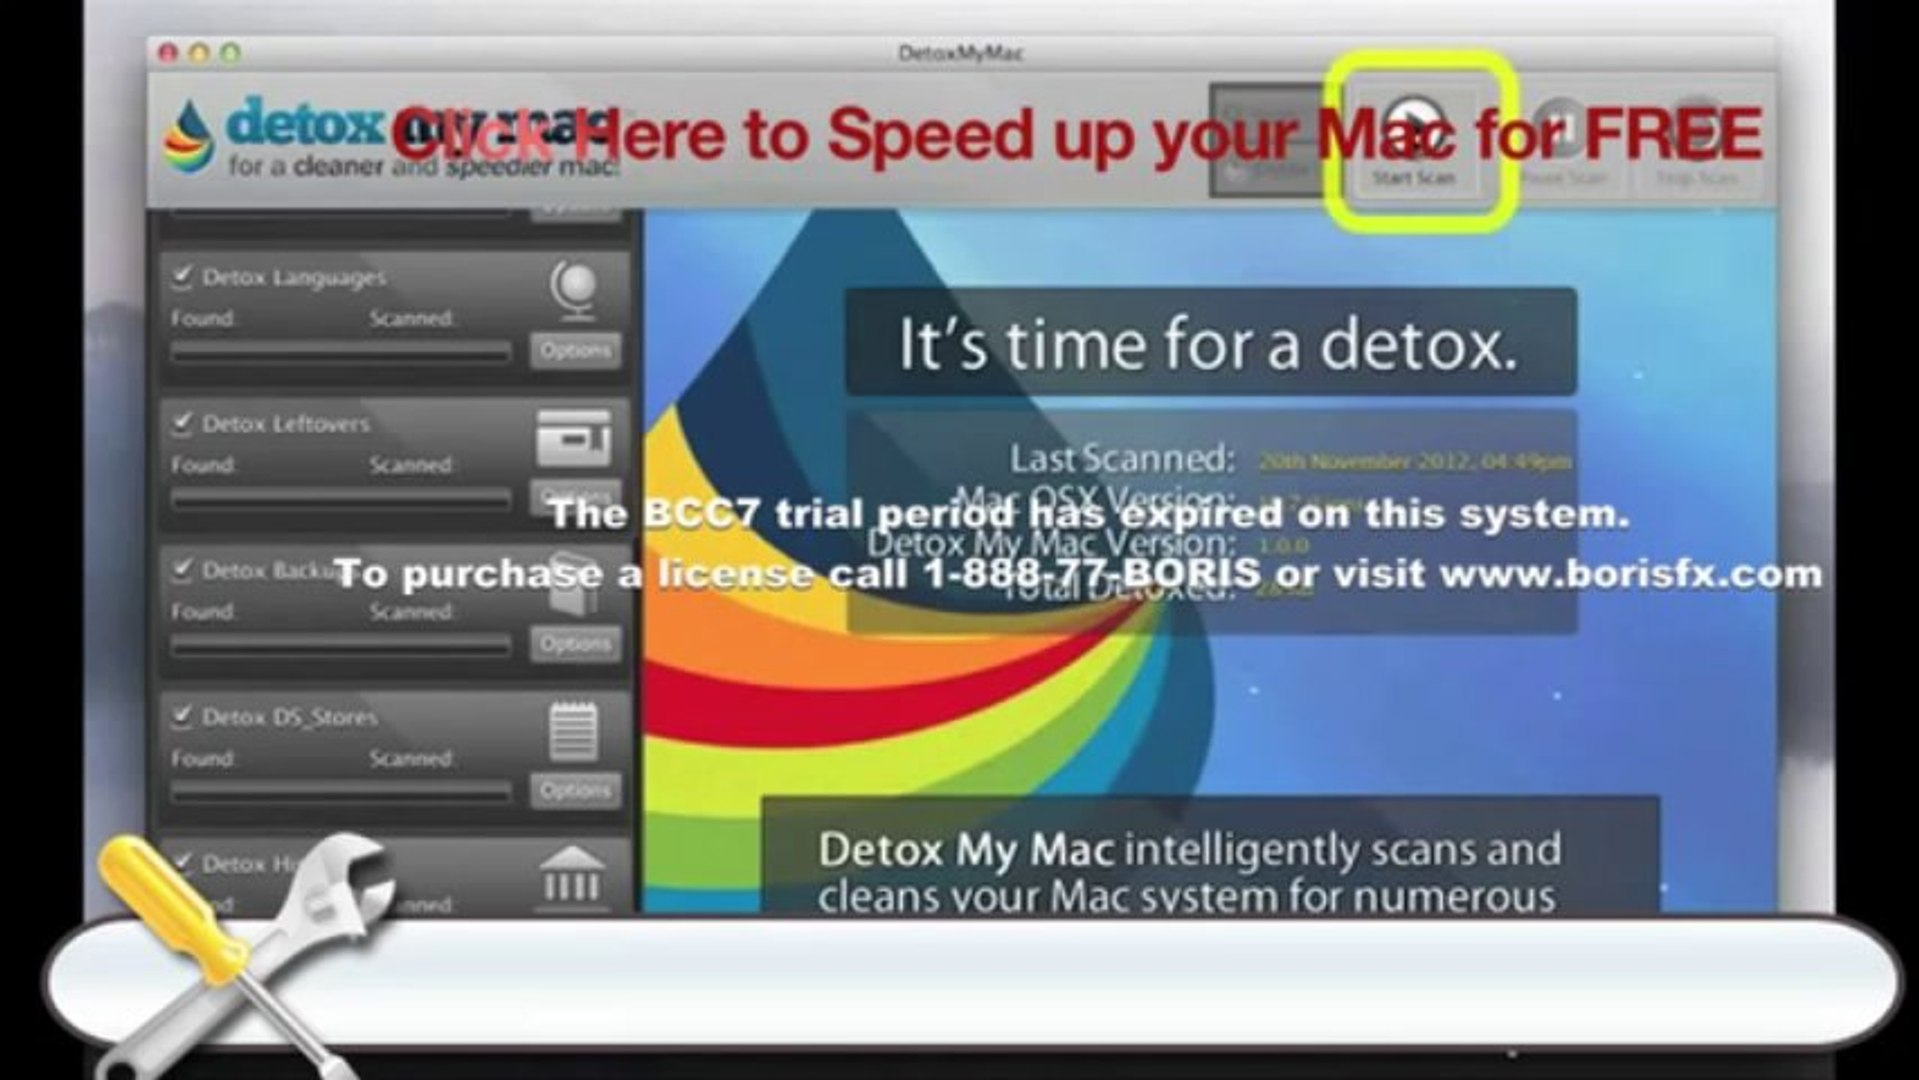 How to Clean Up Macs - Detox My Mac Will Help You Clean Up Your Mac